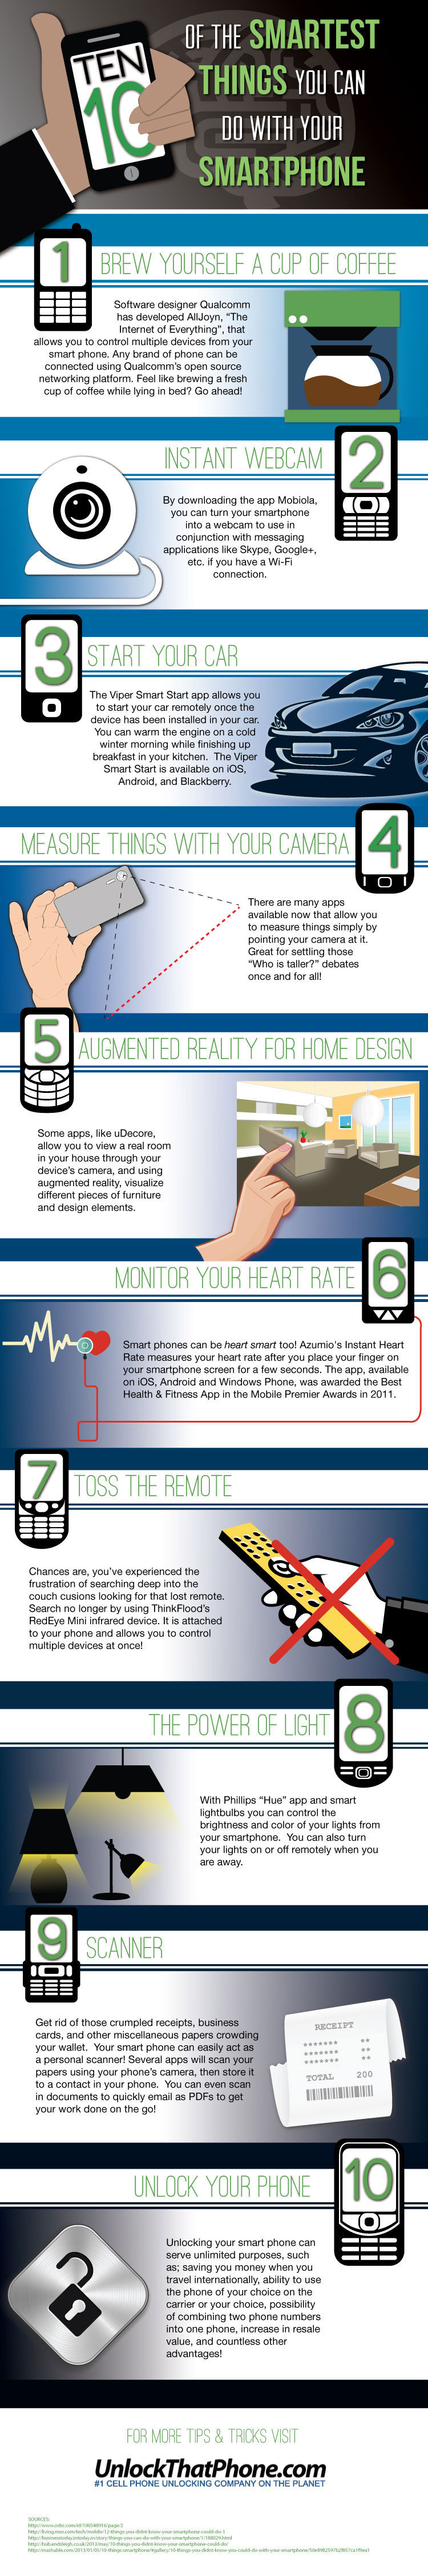 10 Really Smart Things You Can Do With Your Smartphone [Infographic]